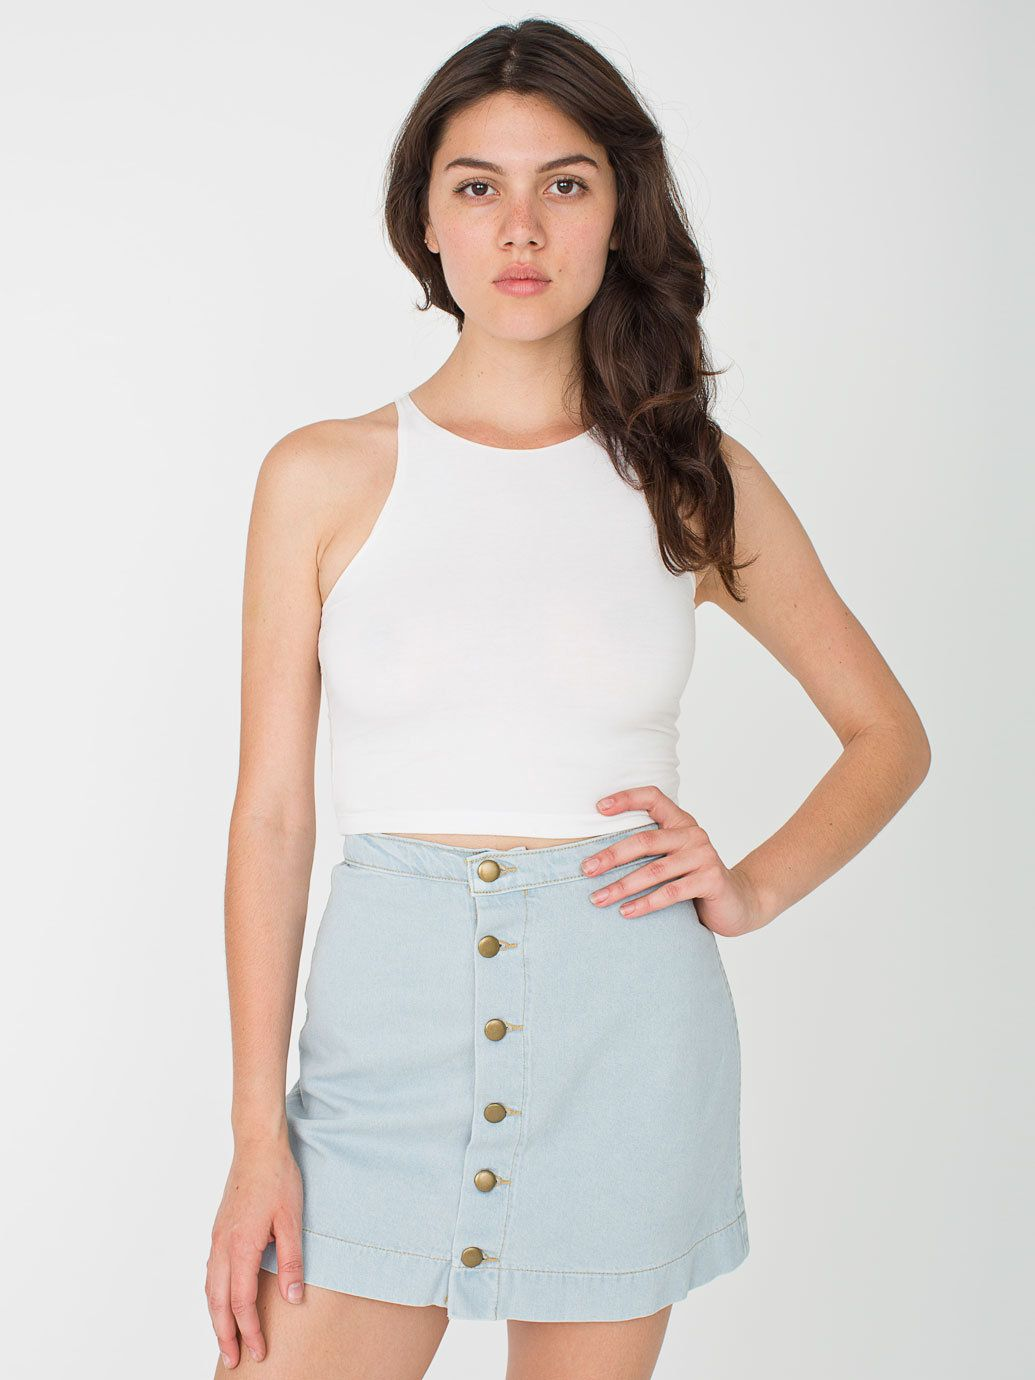 Denim Button Front A-Line Mini Skirt | More Indigo, Fashion beauty ...